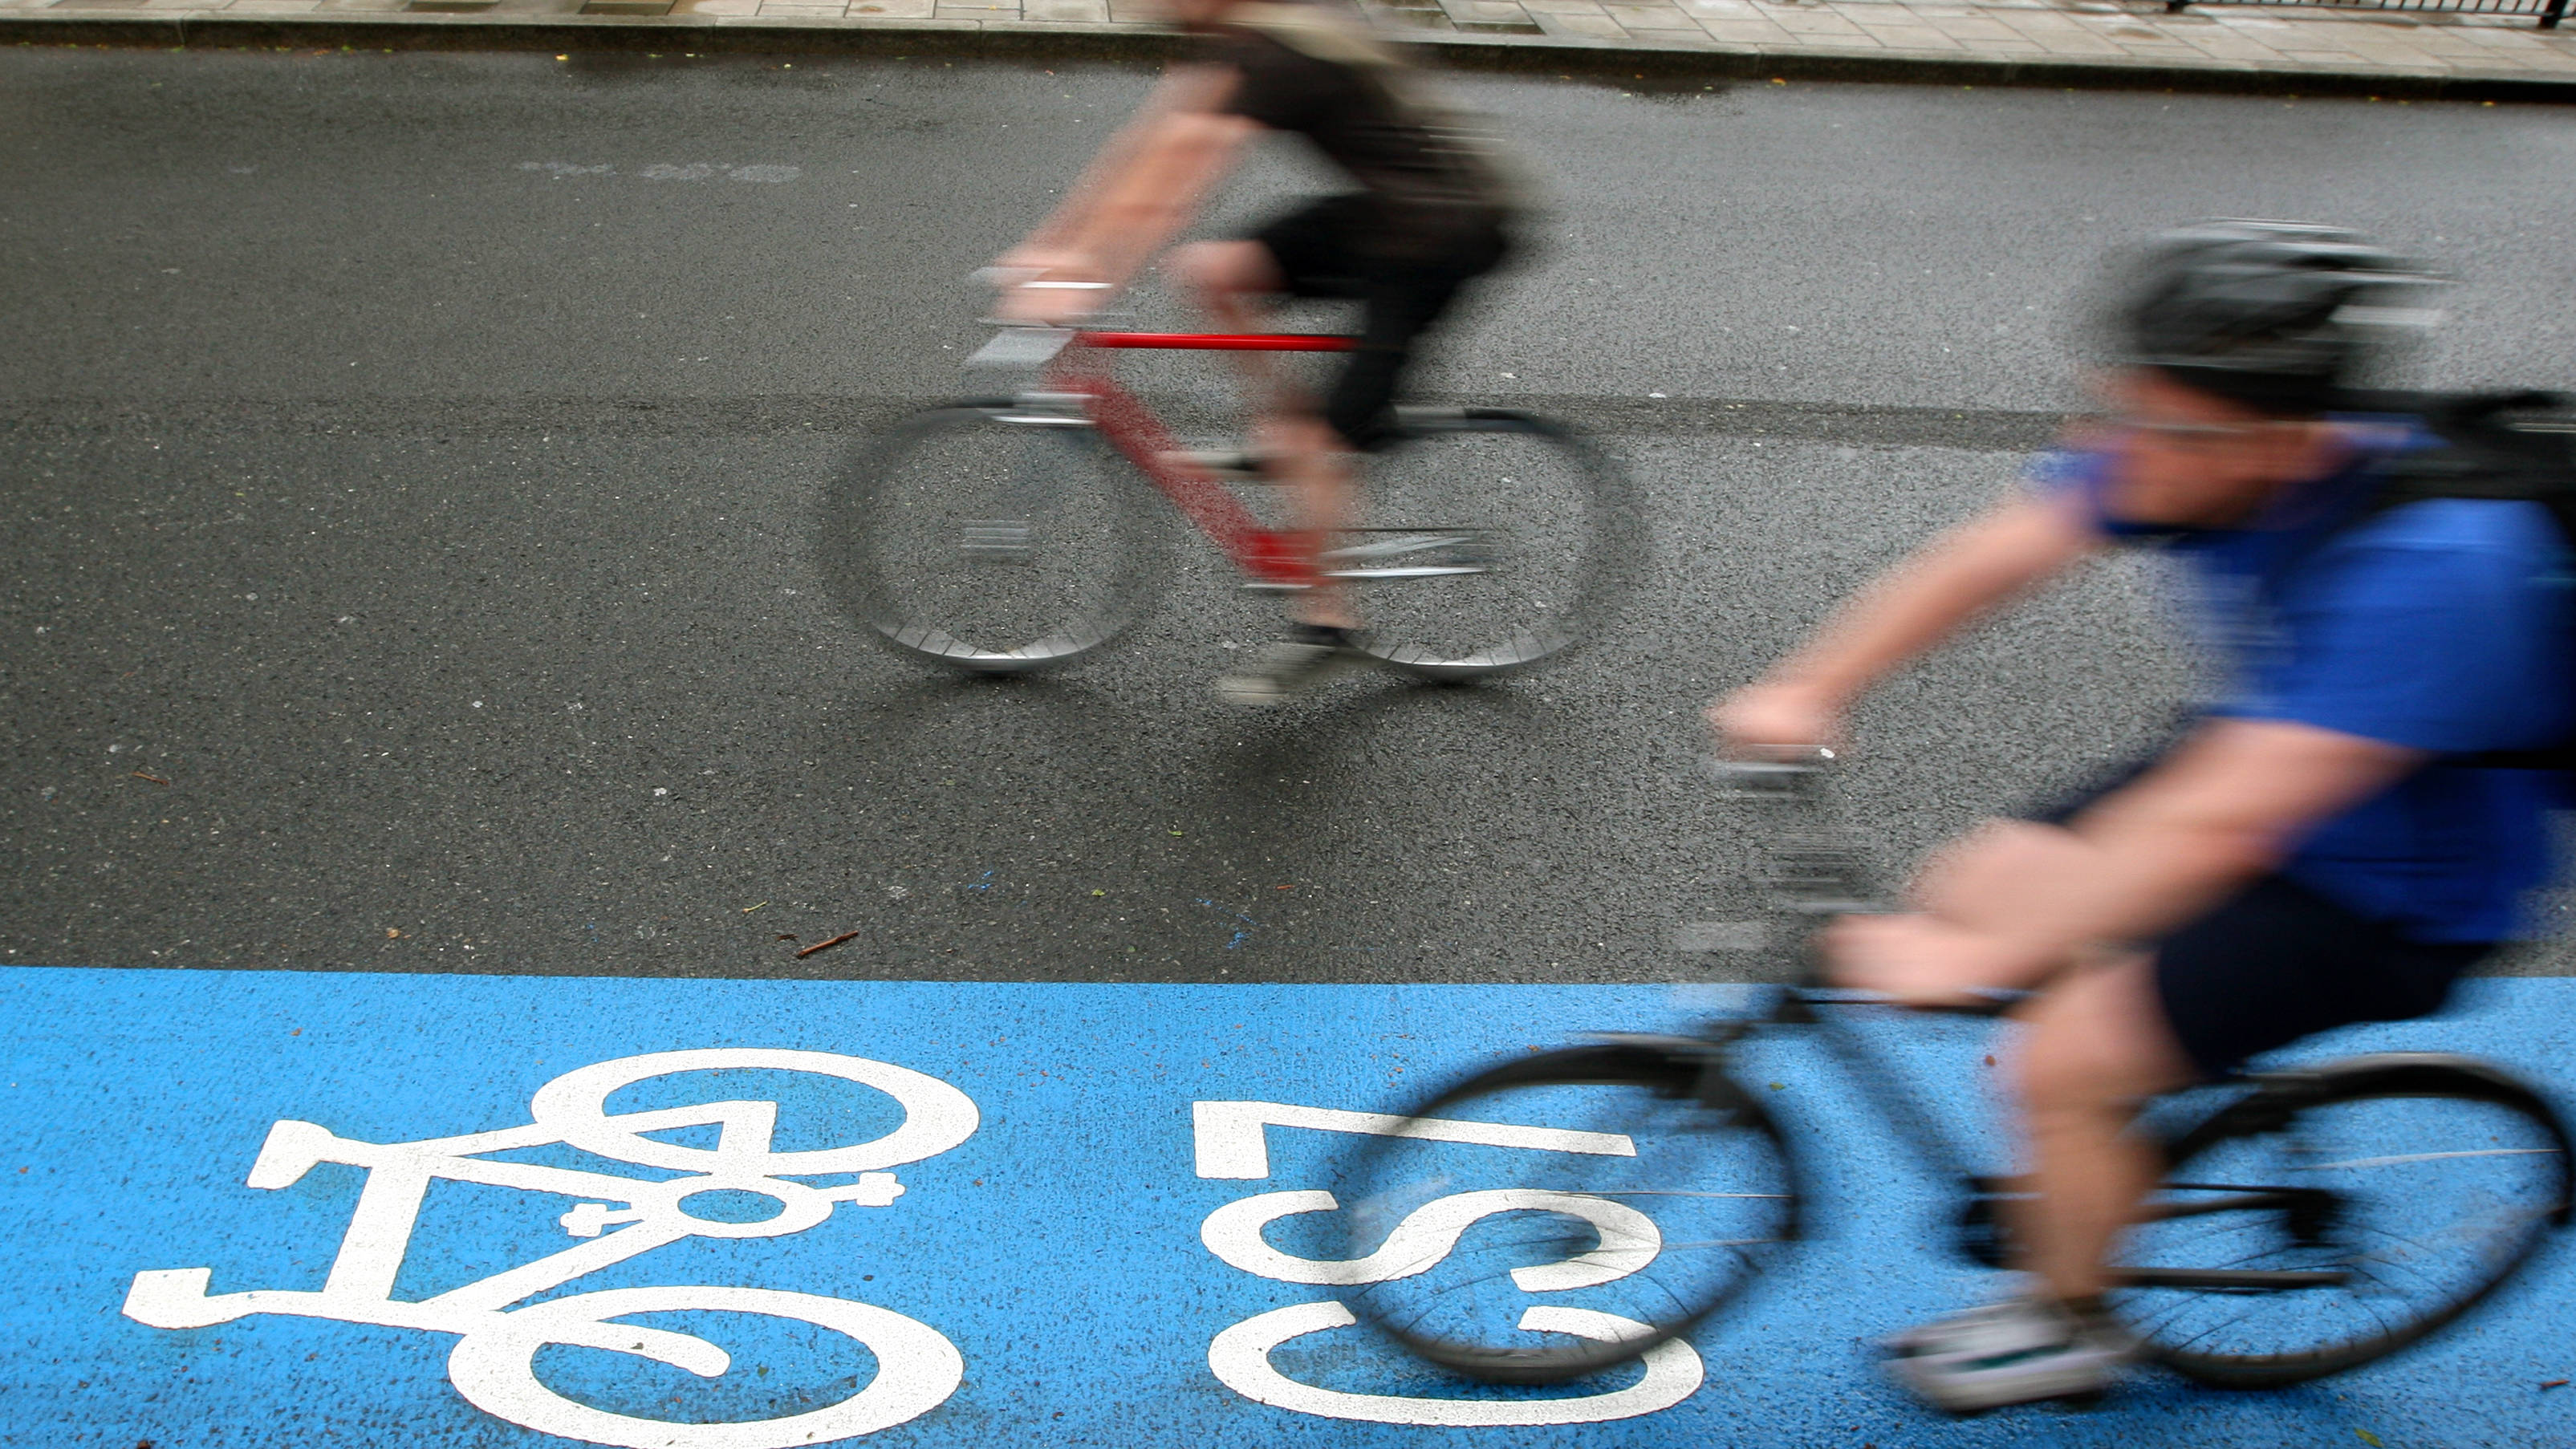 London's Car Free Day: Everything You Need To Know